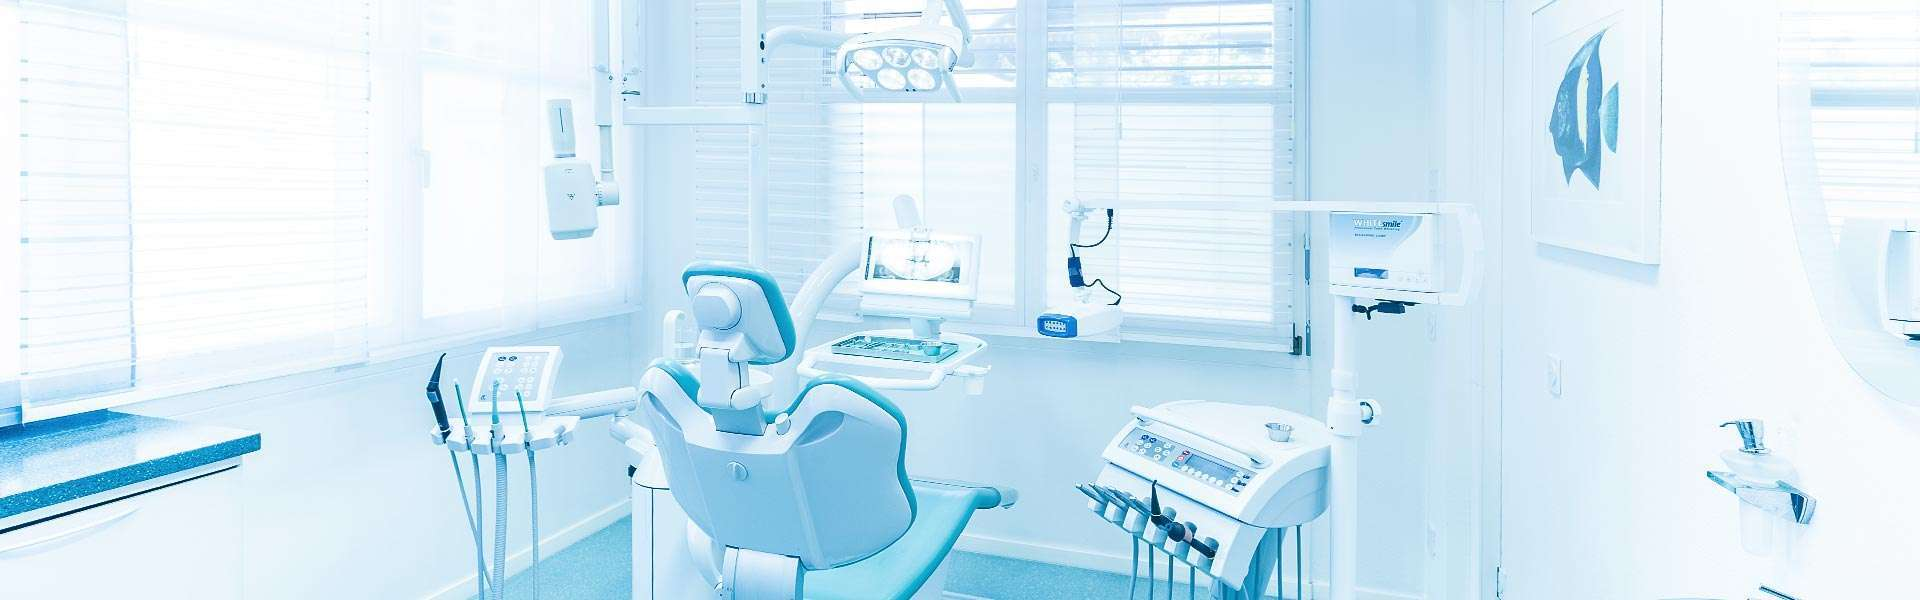 Our Services Dental Practice Alan Kruger Steinhausen Zug